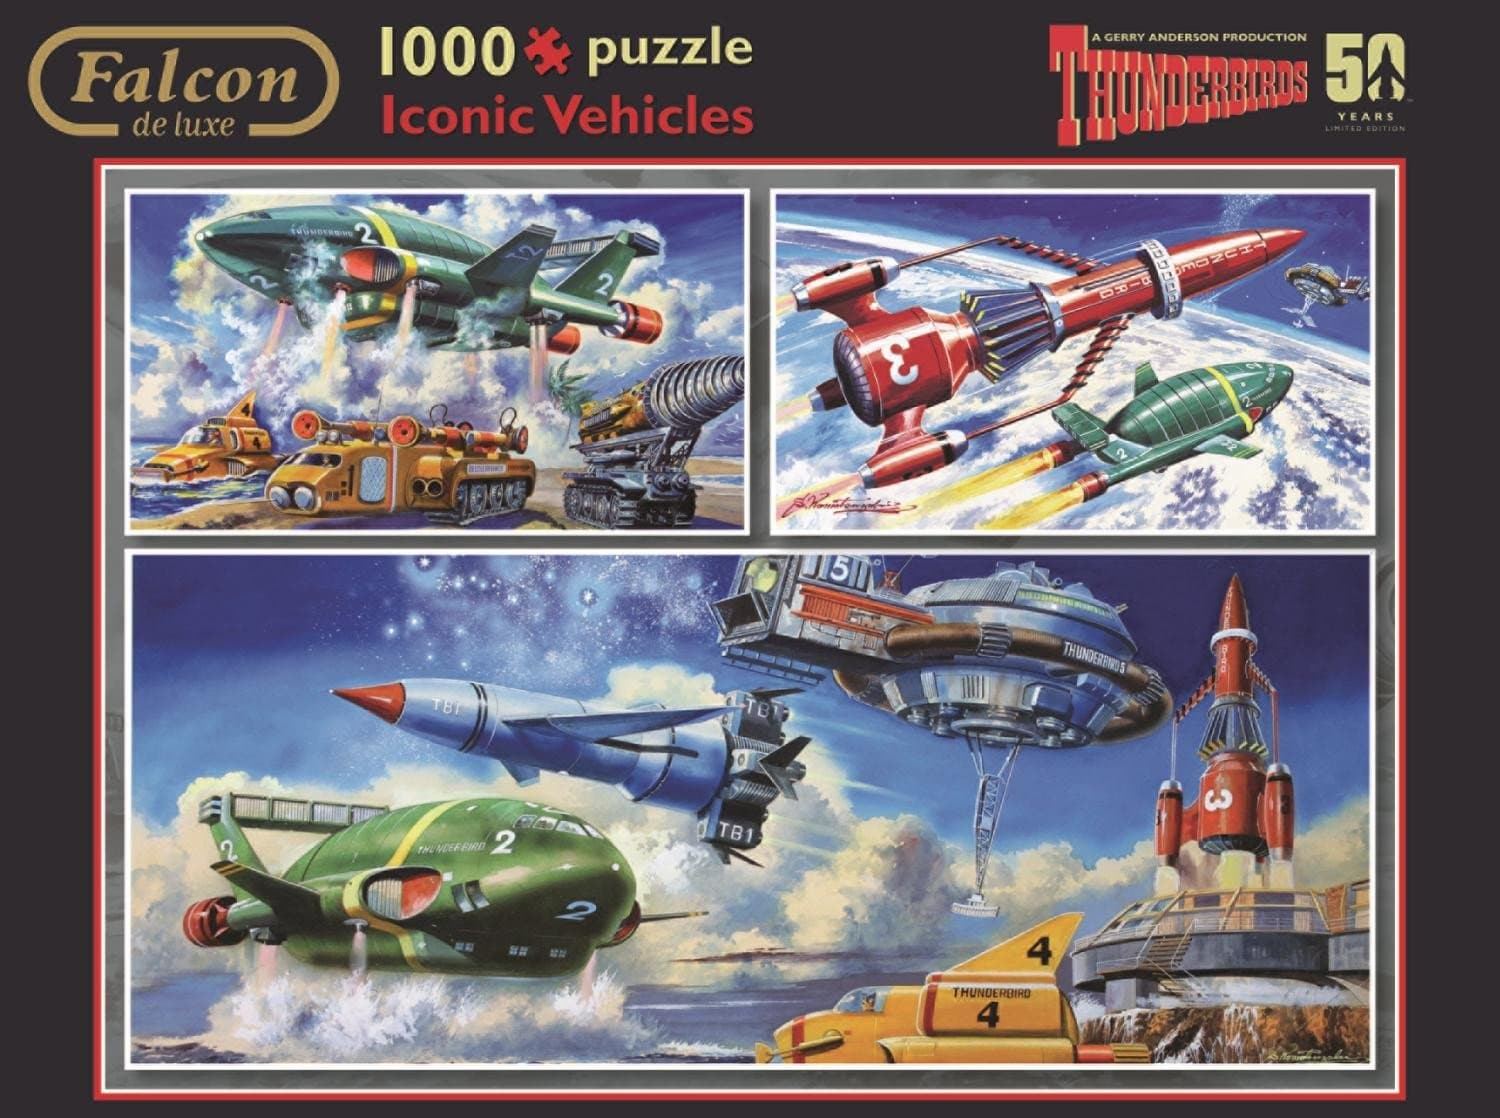 Thunderbirds Iconic Vehicles 1000 piece Jigsaw Puzzle - Gerry Anderson Official - 2